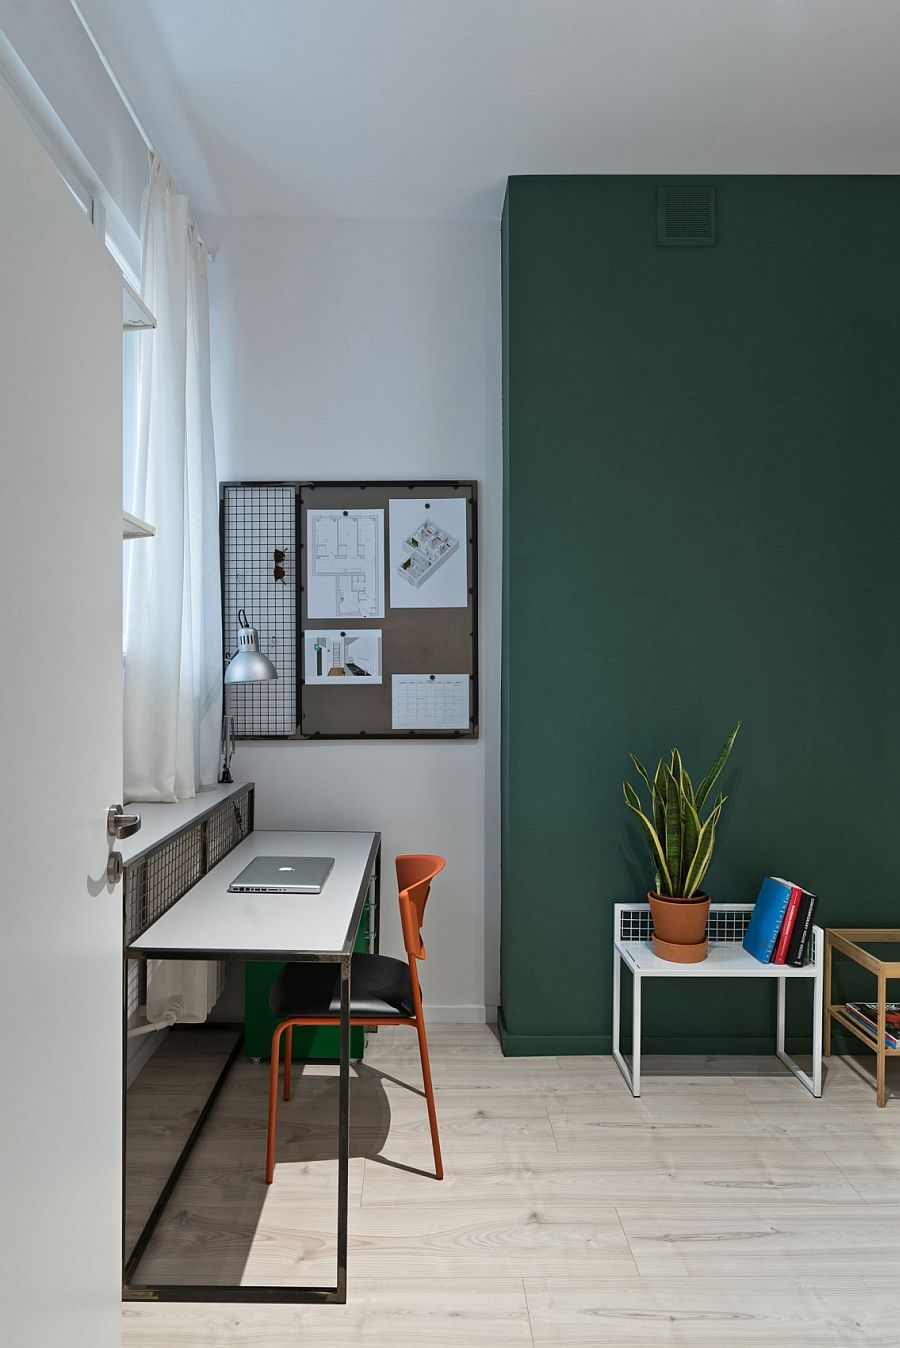 Corner workspace idea for small, urban apartments